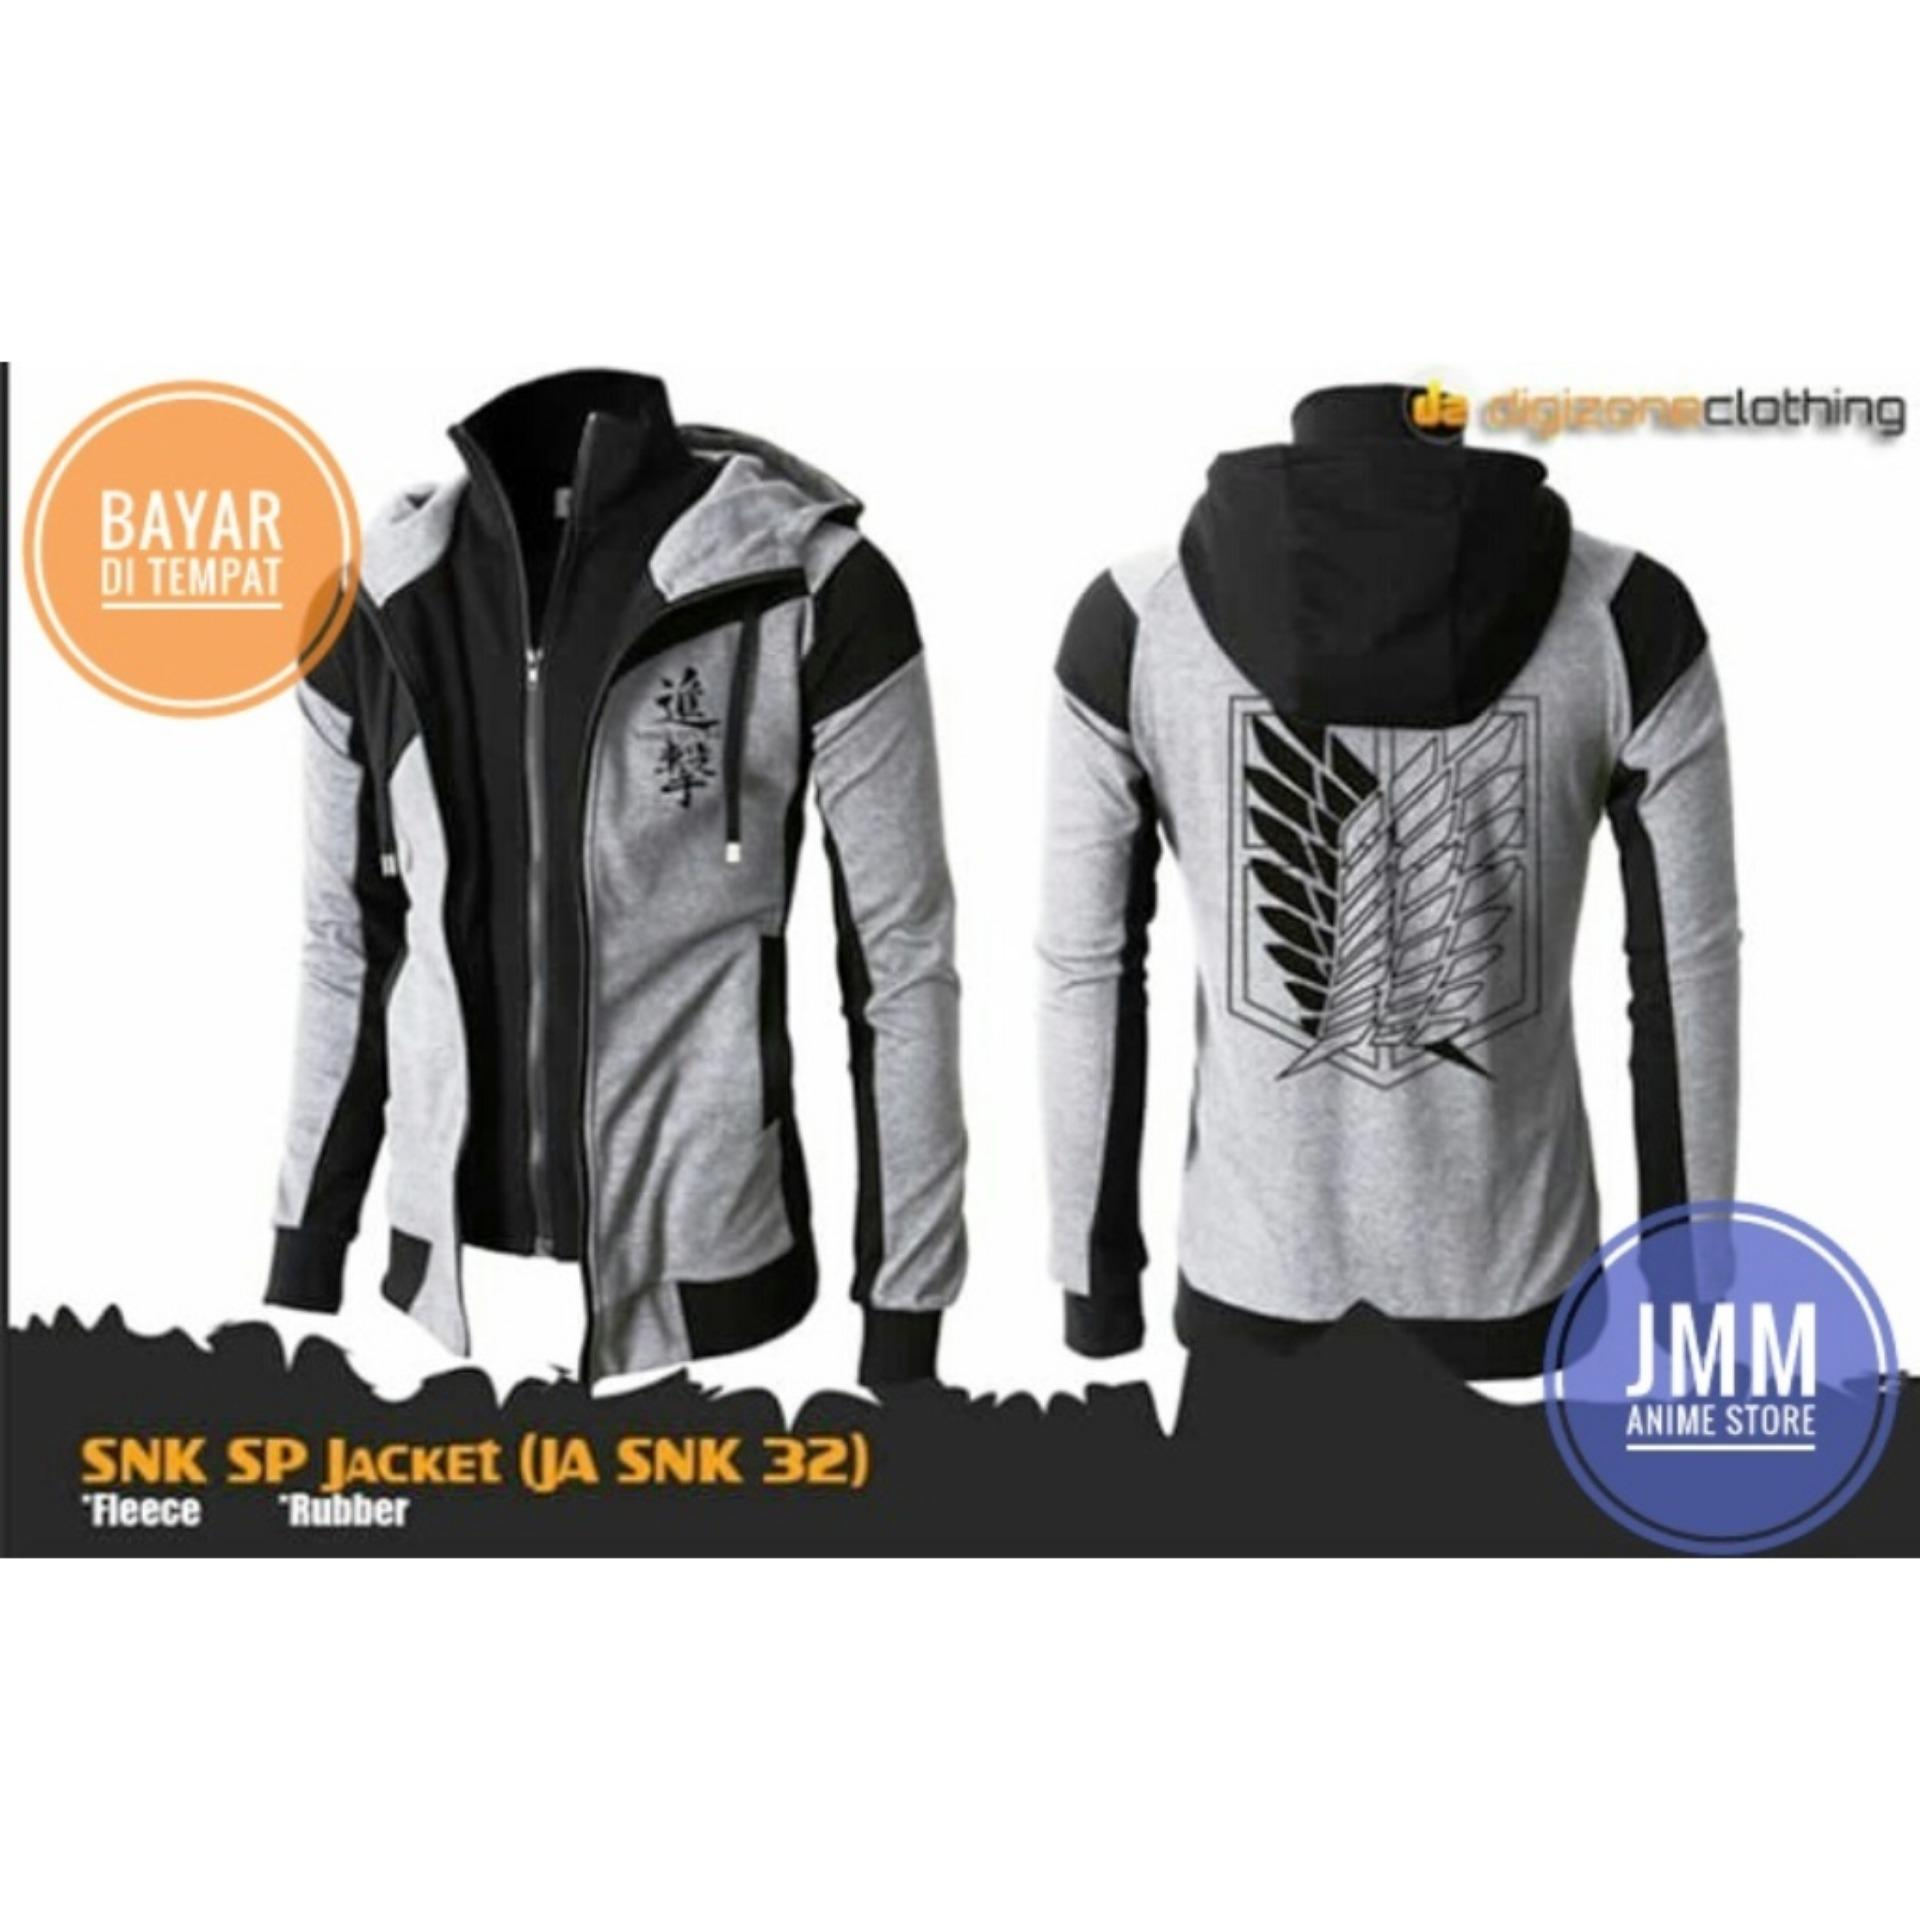 Review Jaket Anime Attack On Titan Double Zipper Grey Black Hoodie Best Seller Jmm Di Jawa Barat